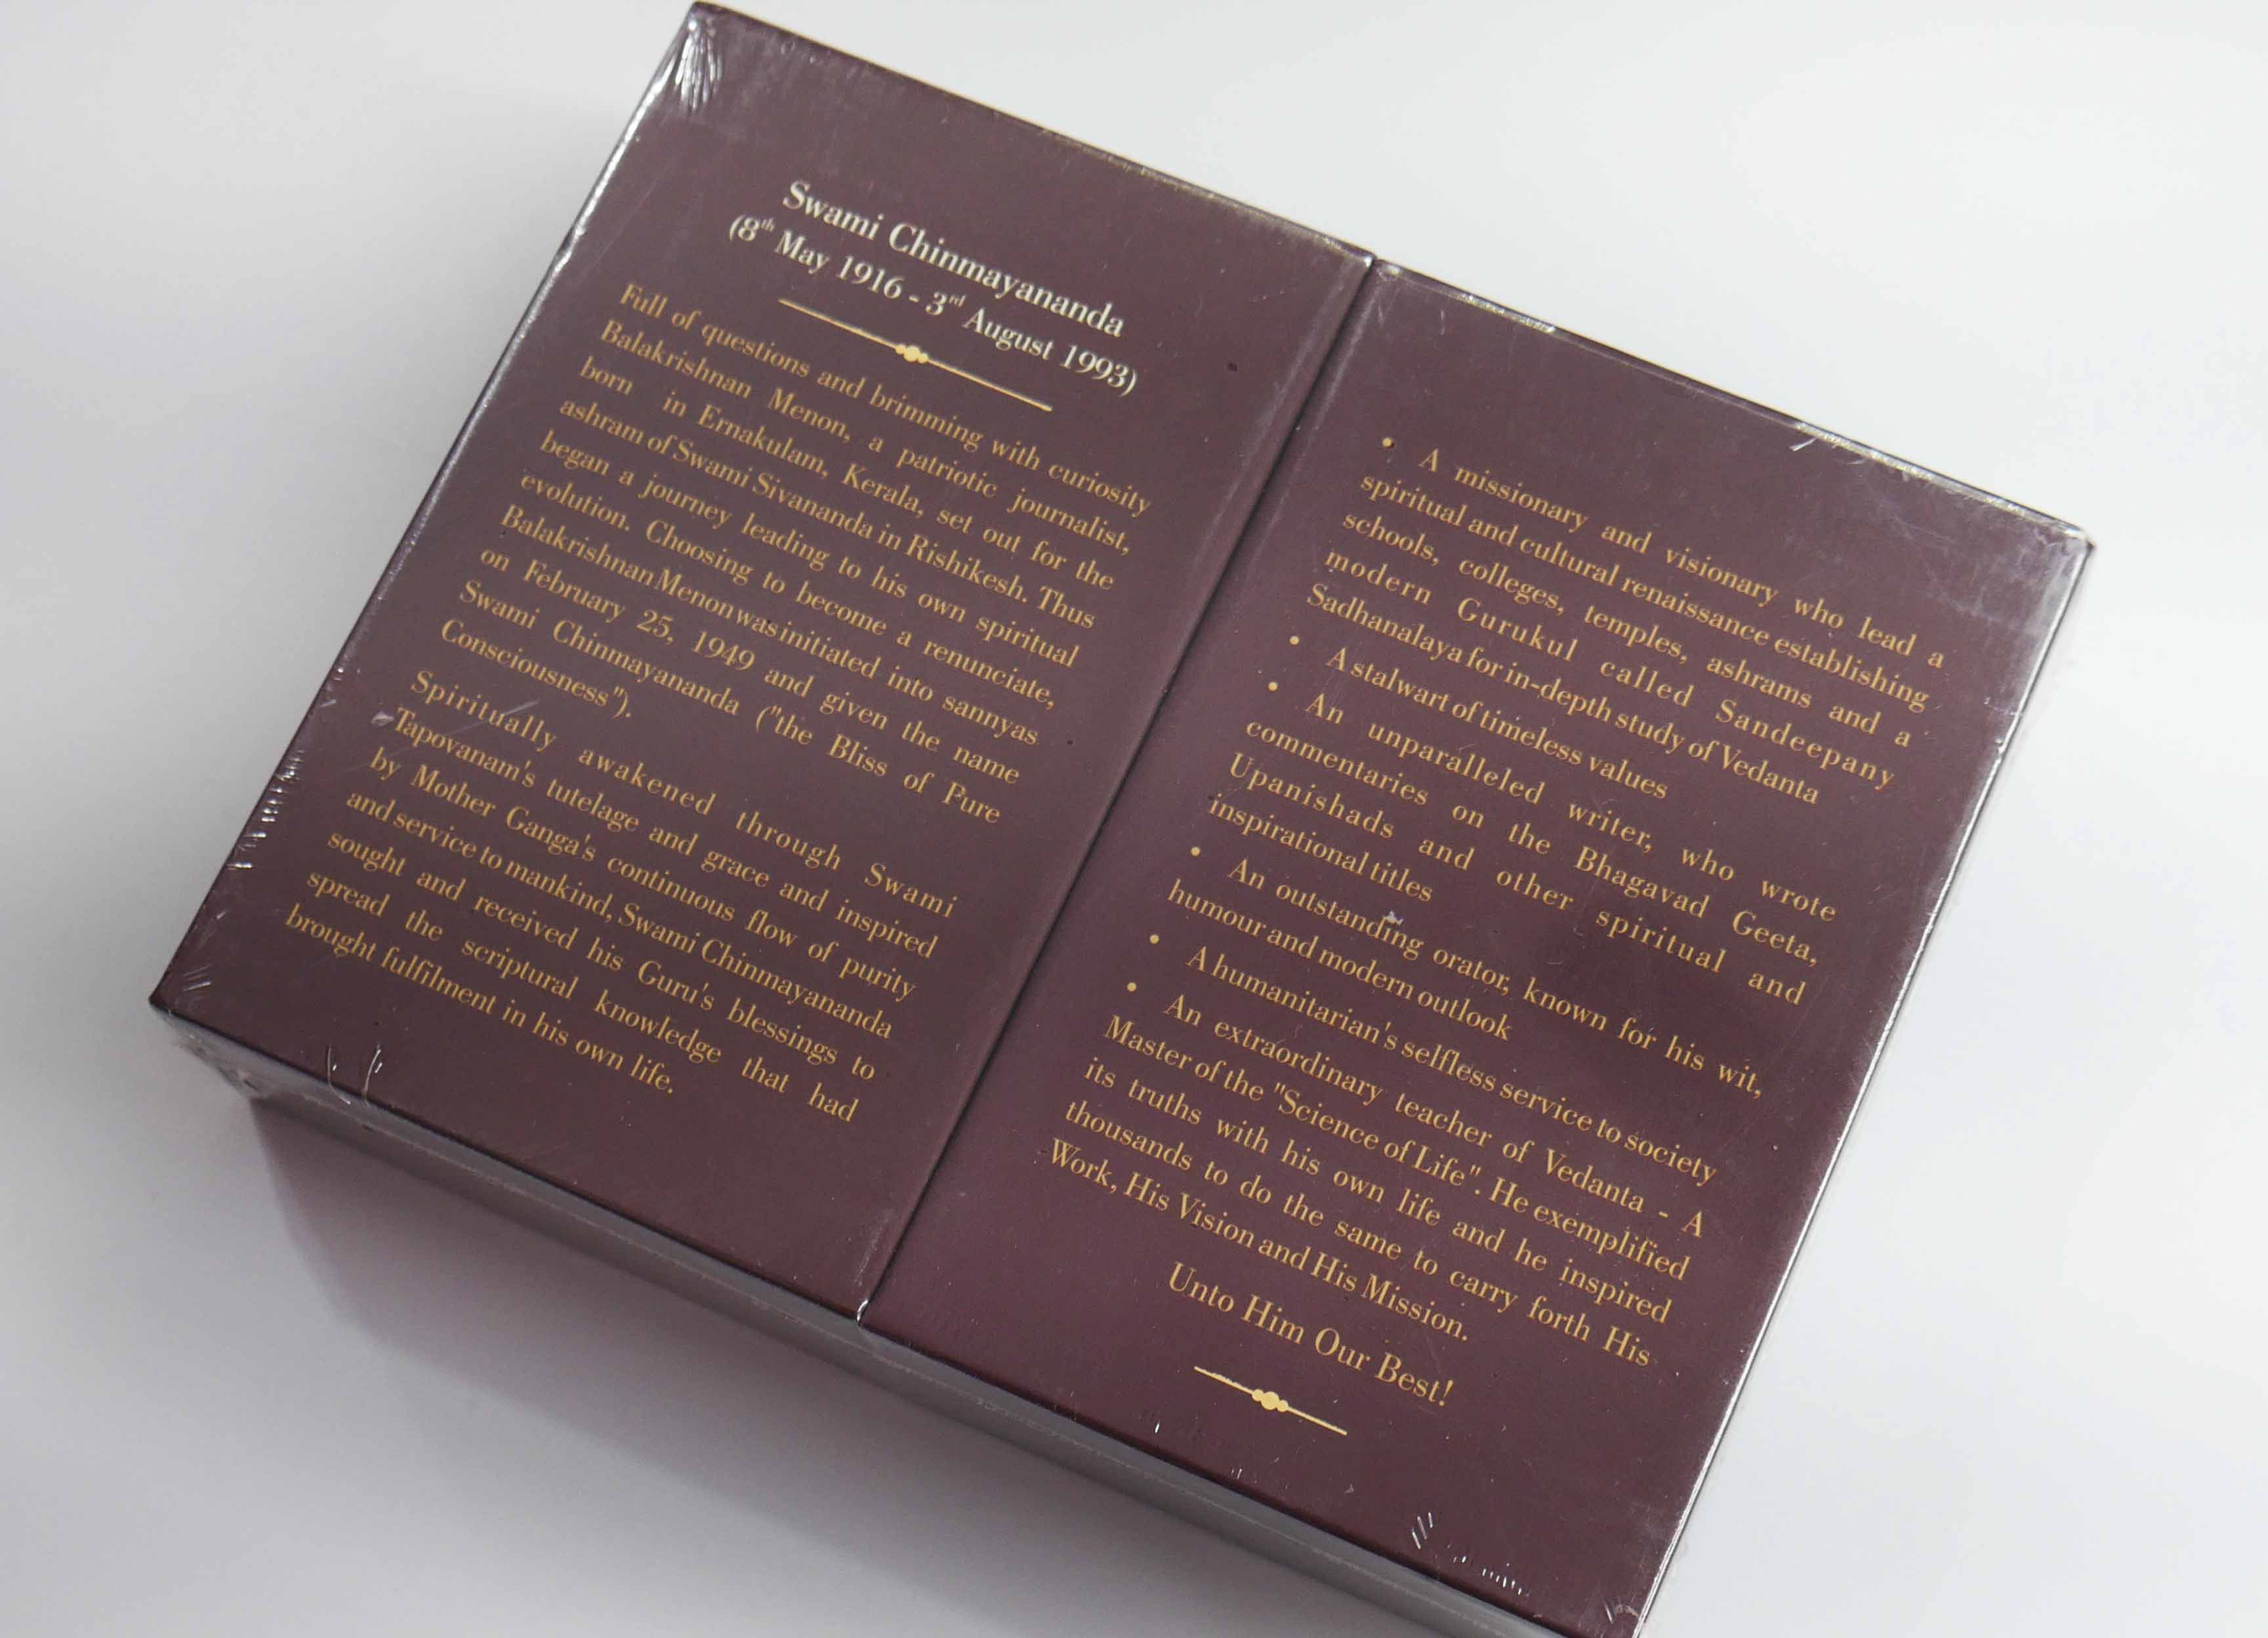 Swami Chinmayananda Birth Centenary Vvip Coin Sets Indian Philosophy University Lectures Social Services